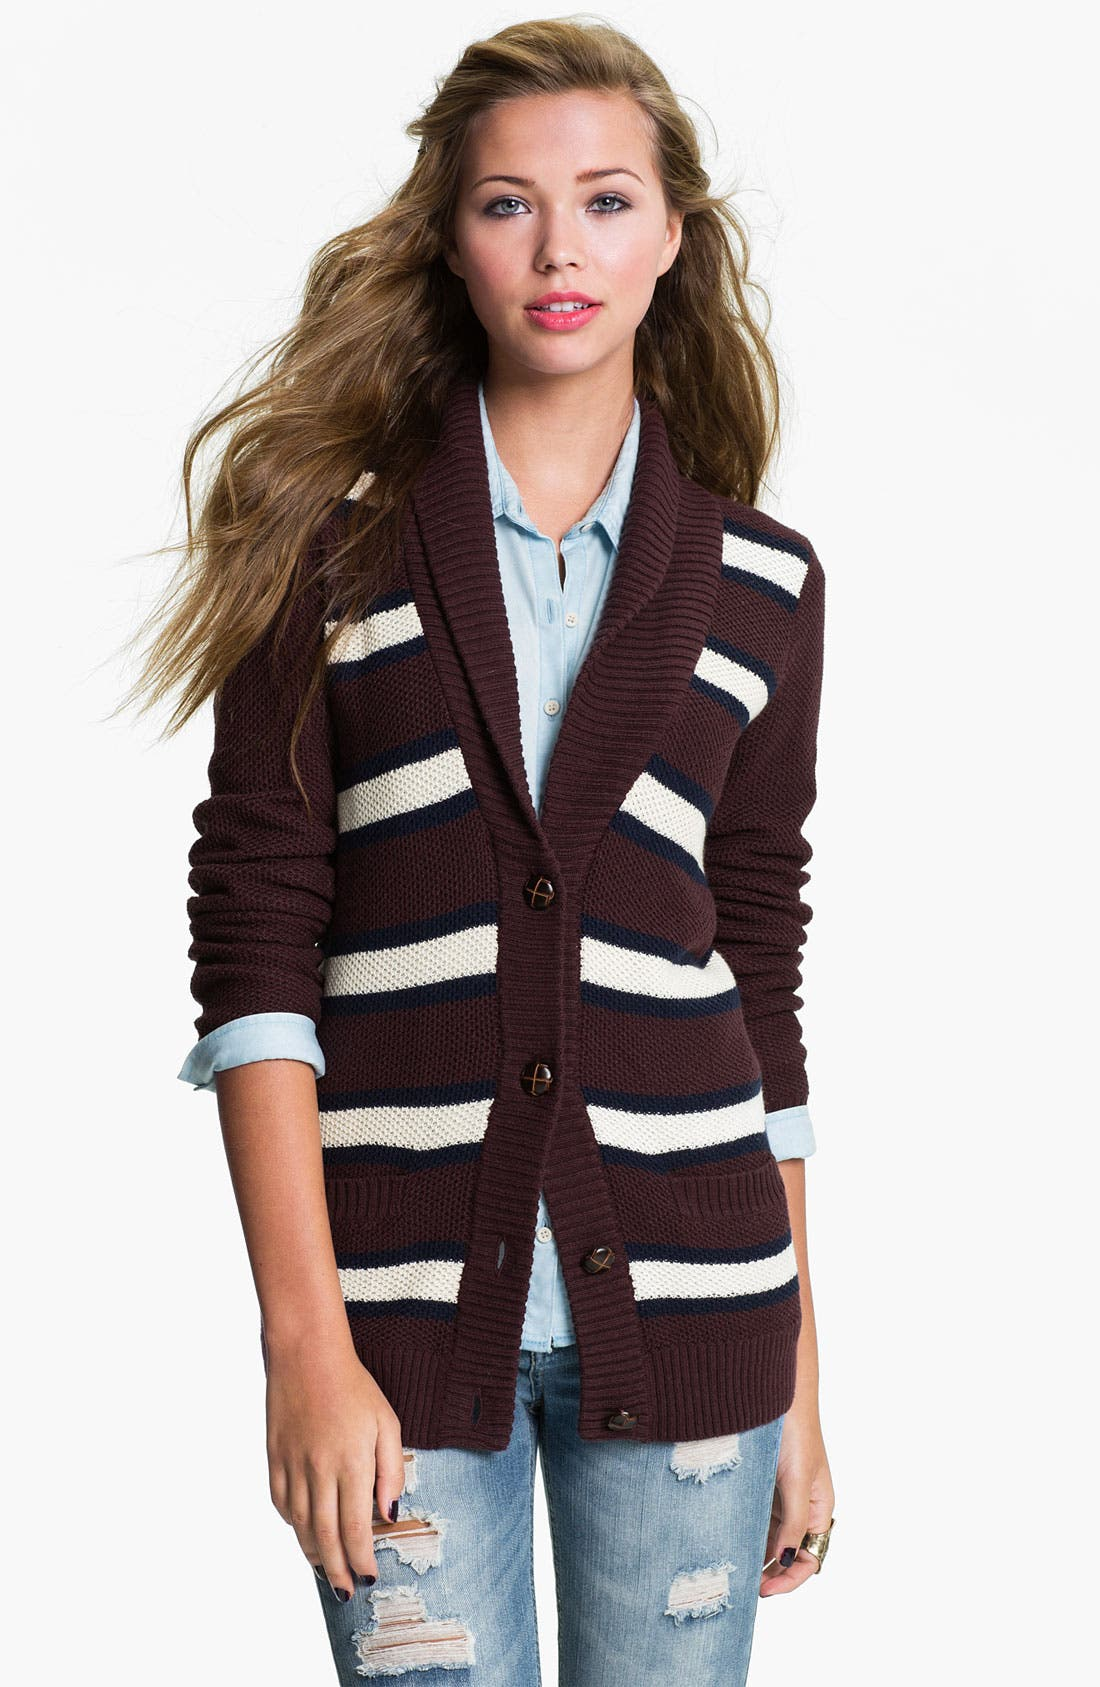 Alternate Image 1 Selected - BP. Shawl Collar Cardigan (Juniors)